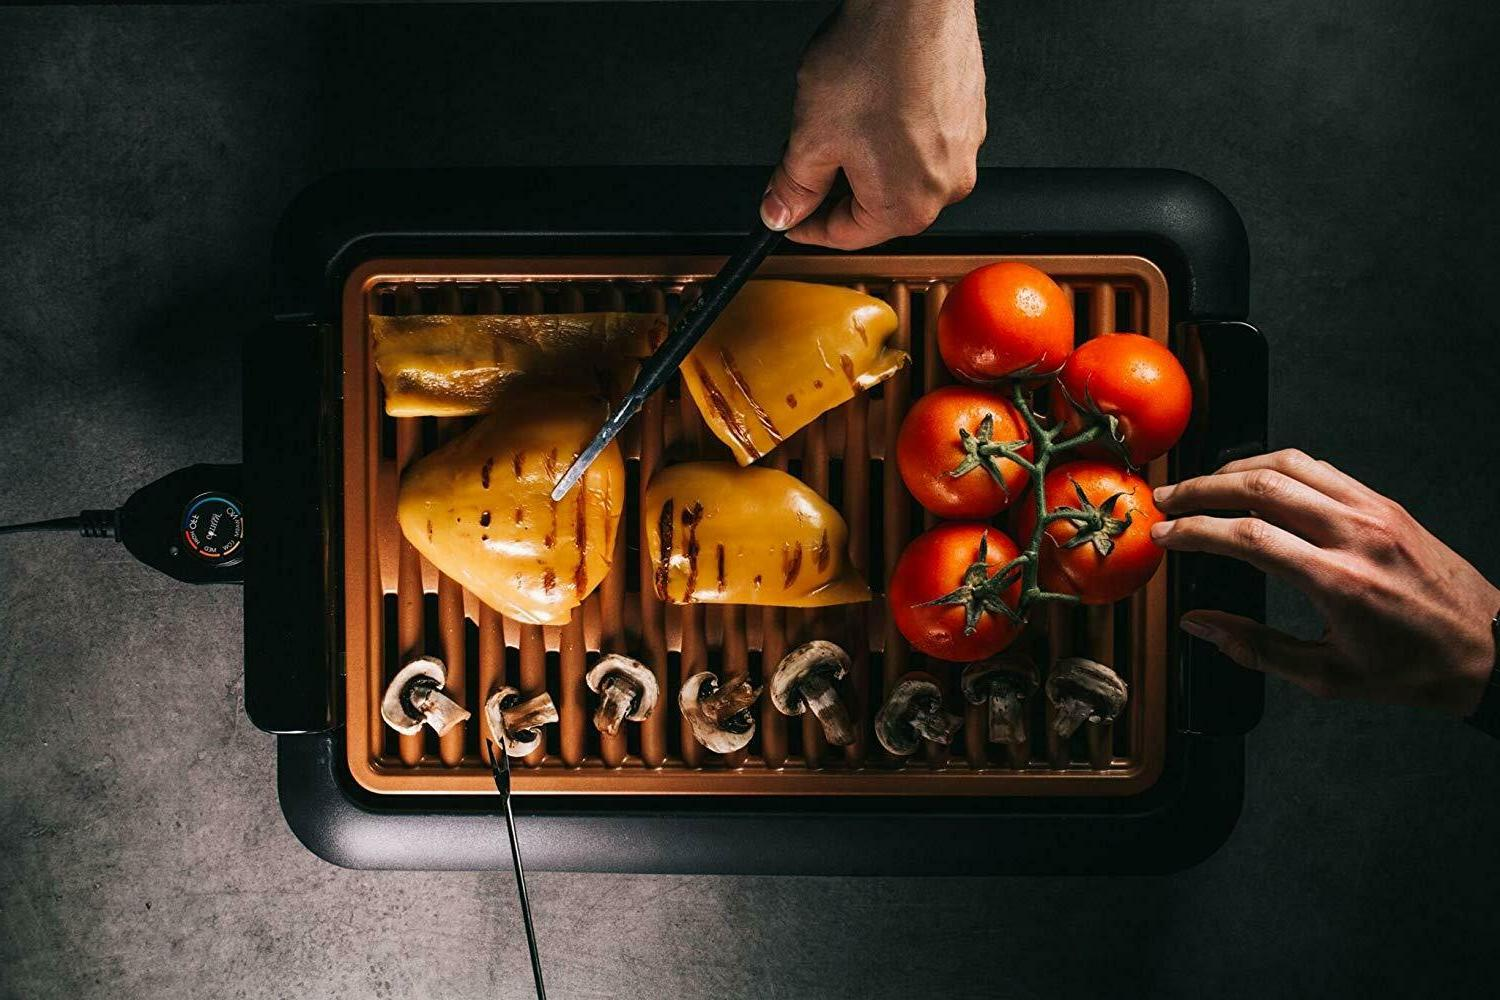 Gotham Grill Interchangeable Griddle Surface